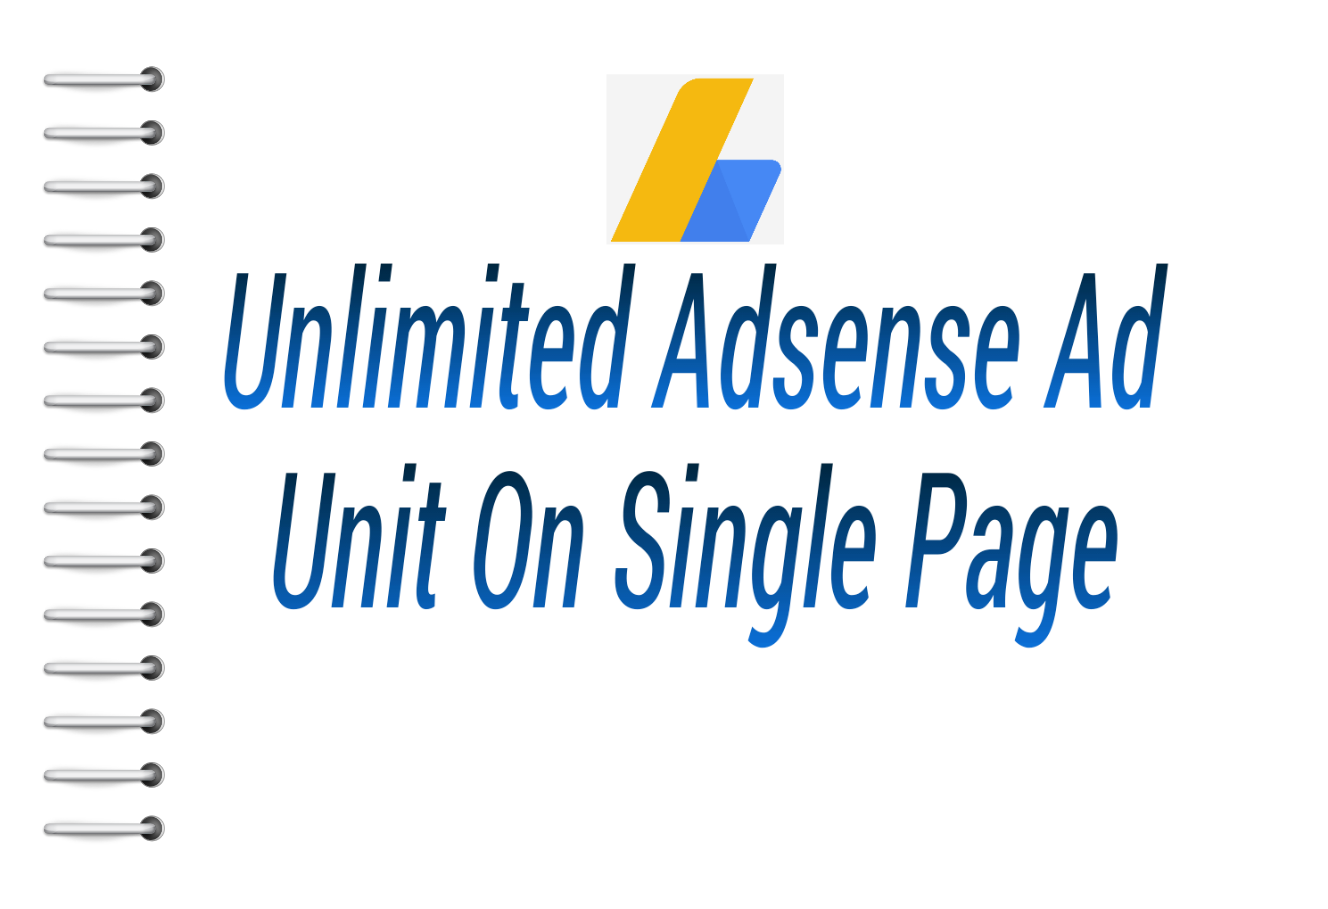 Unlimited Adsense Ad Unit On Single Page